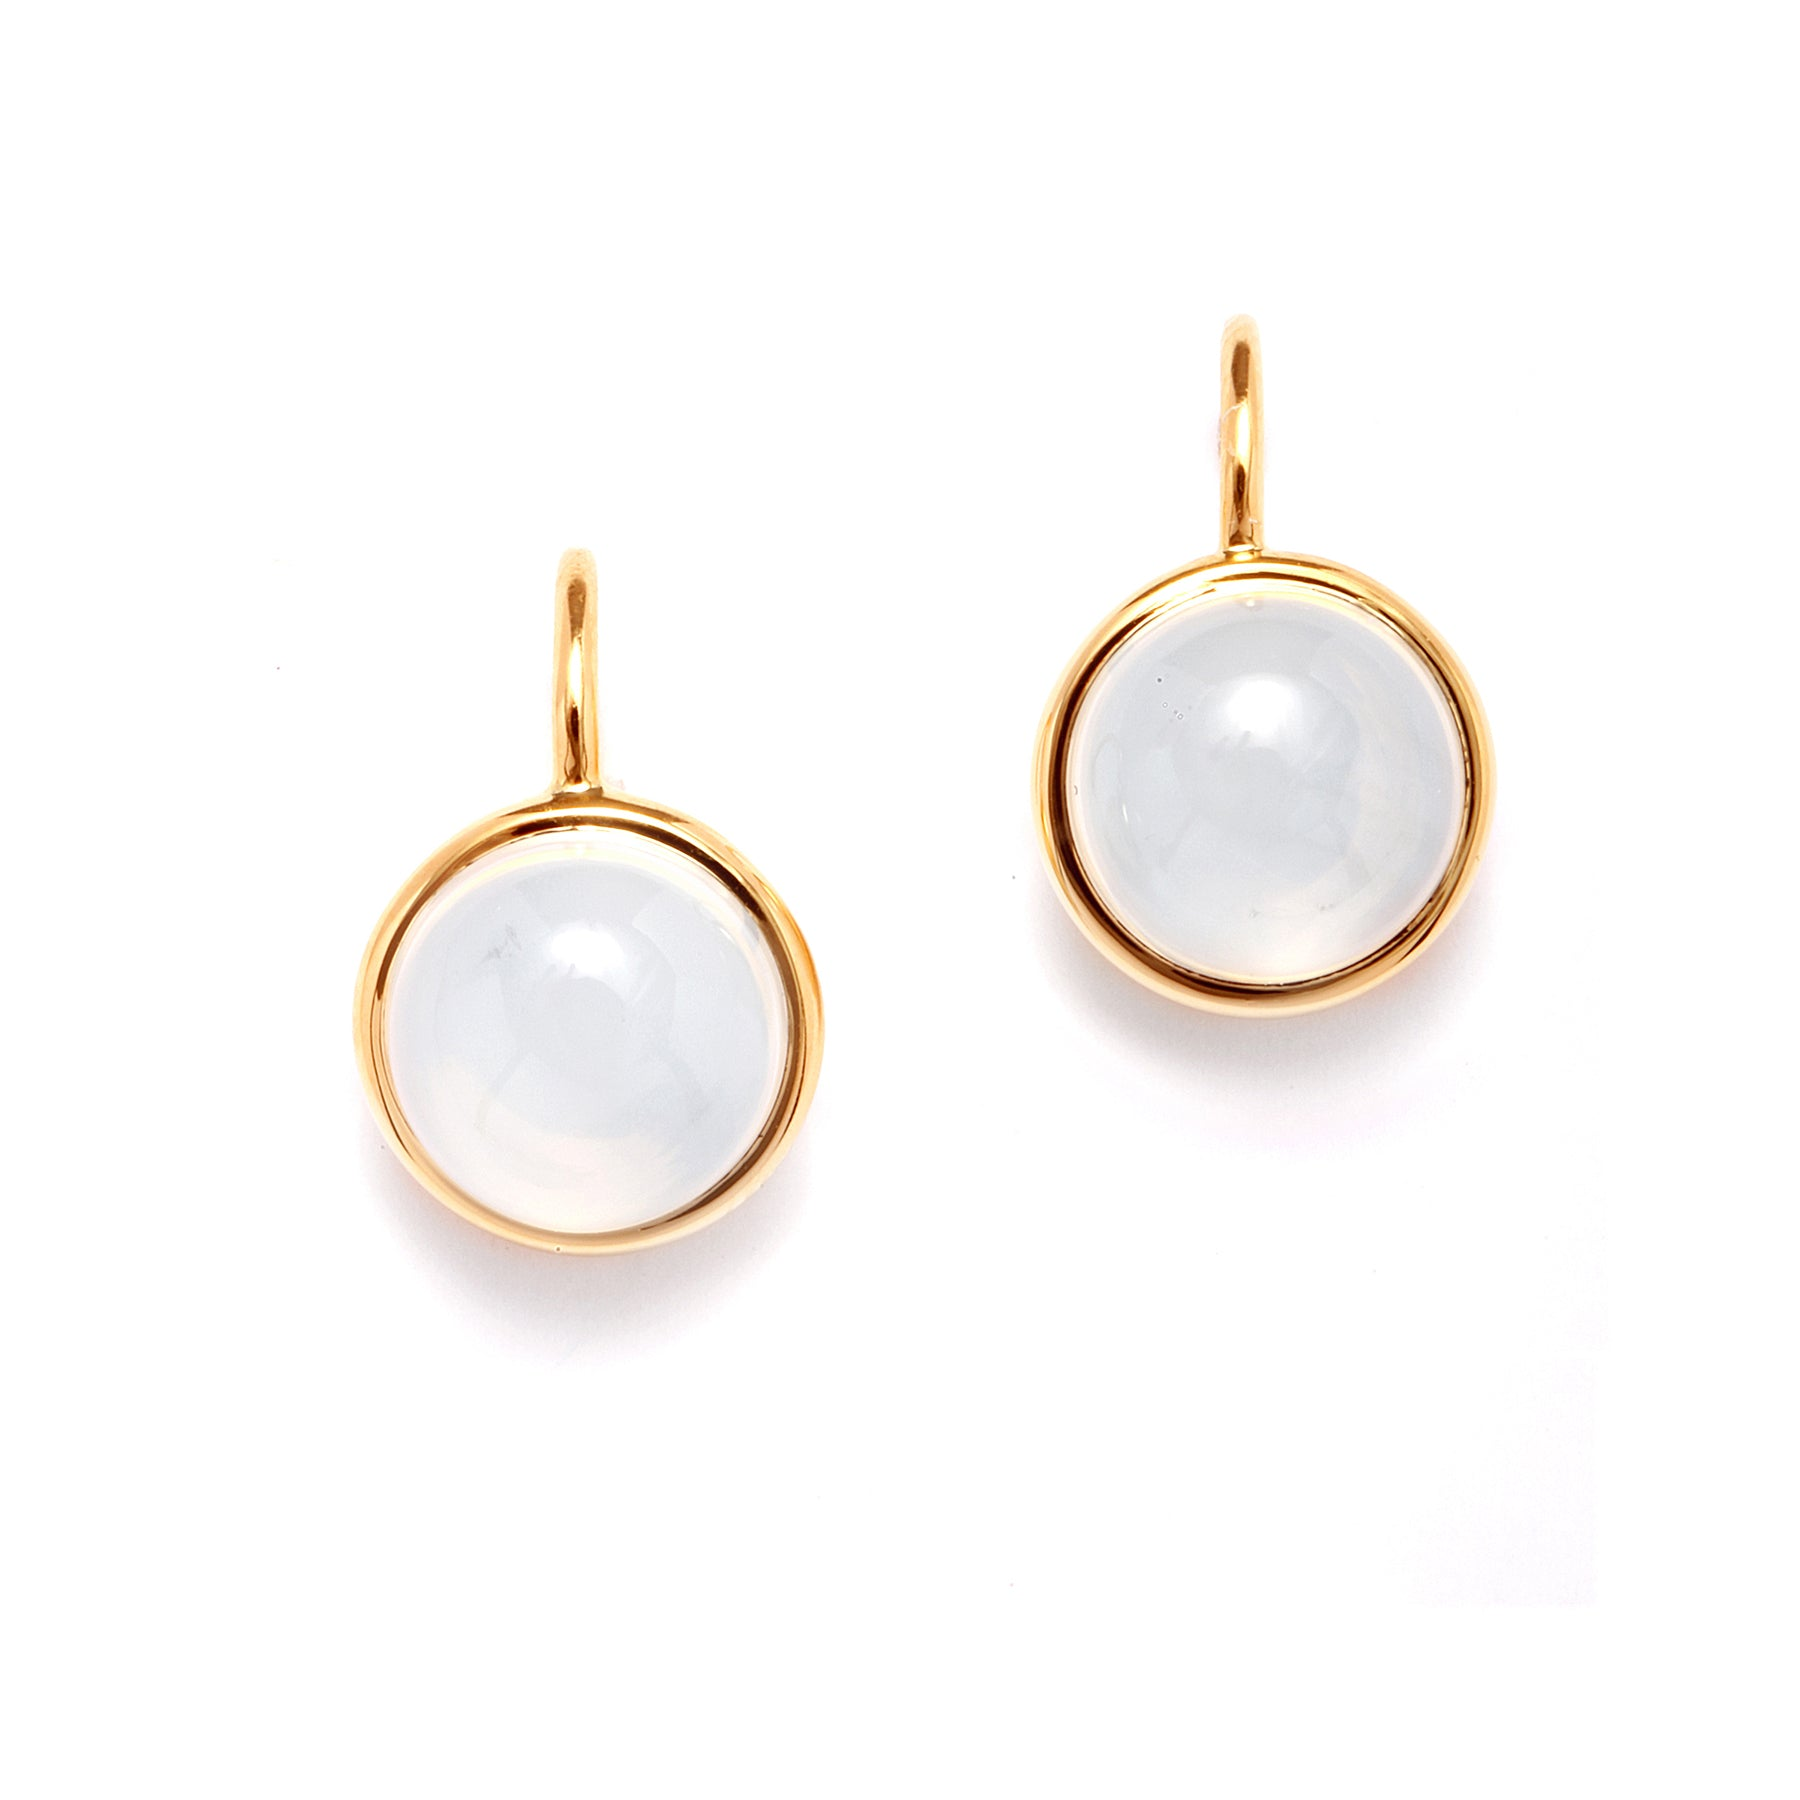 Baubles Moon Quartz Earrings